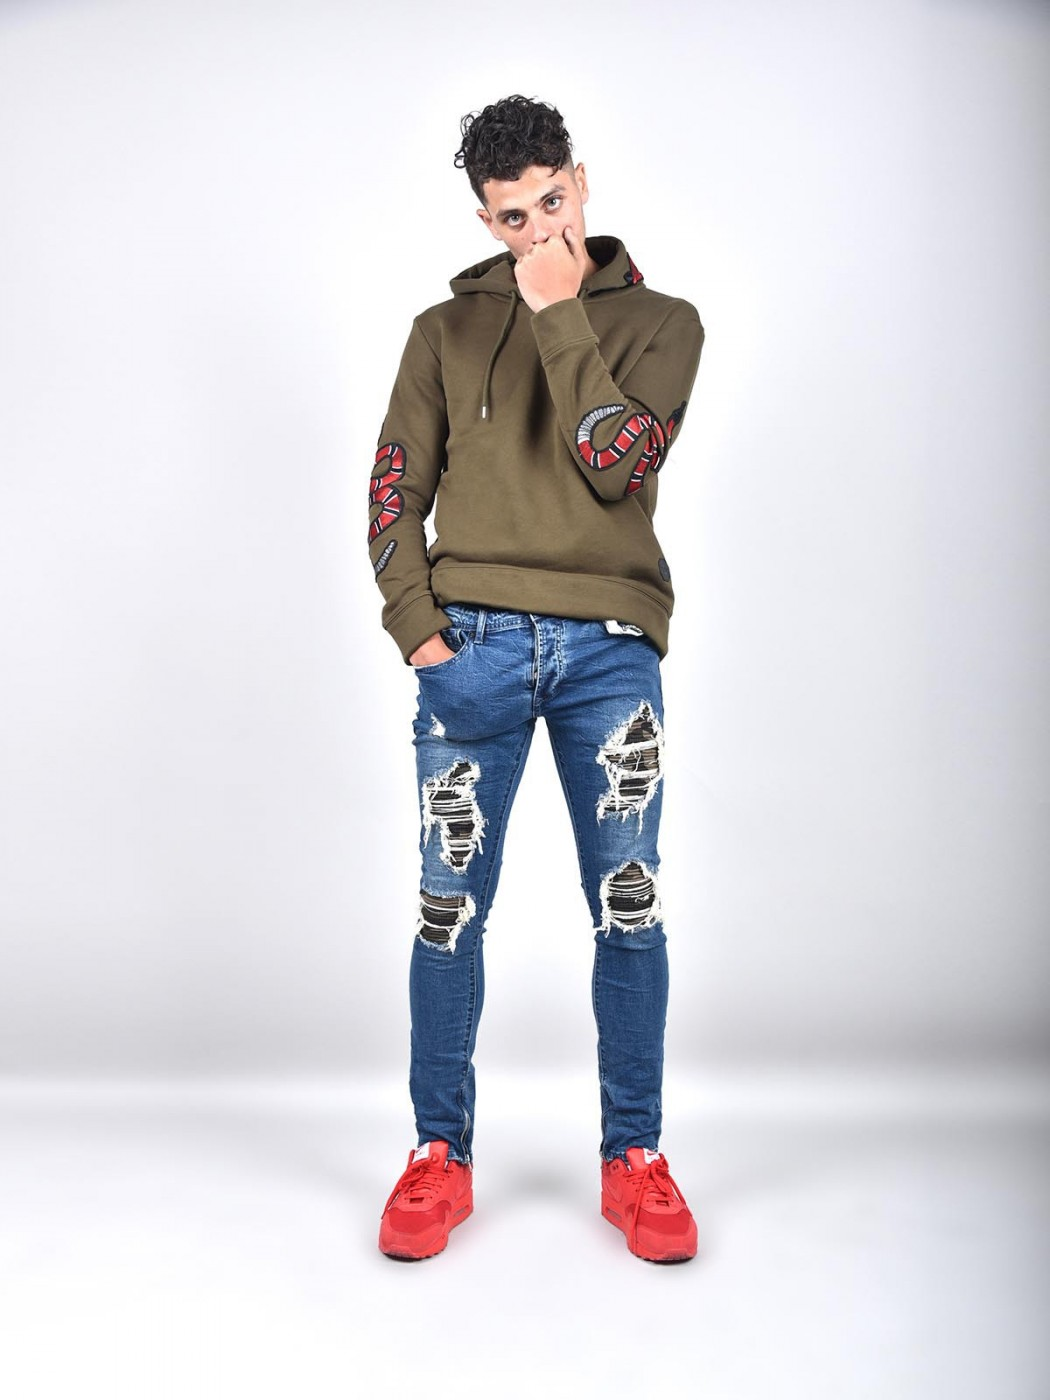 2b89b3e33a4d0 Men's Skinny Biker Jeans With Distressing And Camo Patch Project X Paris